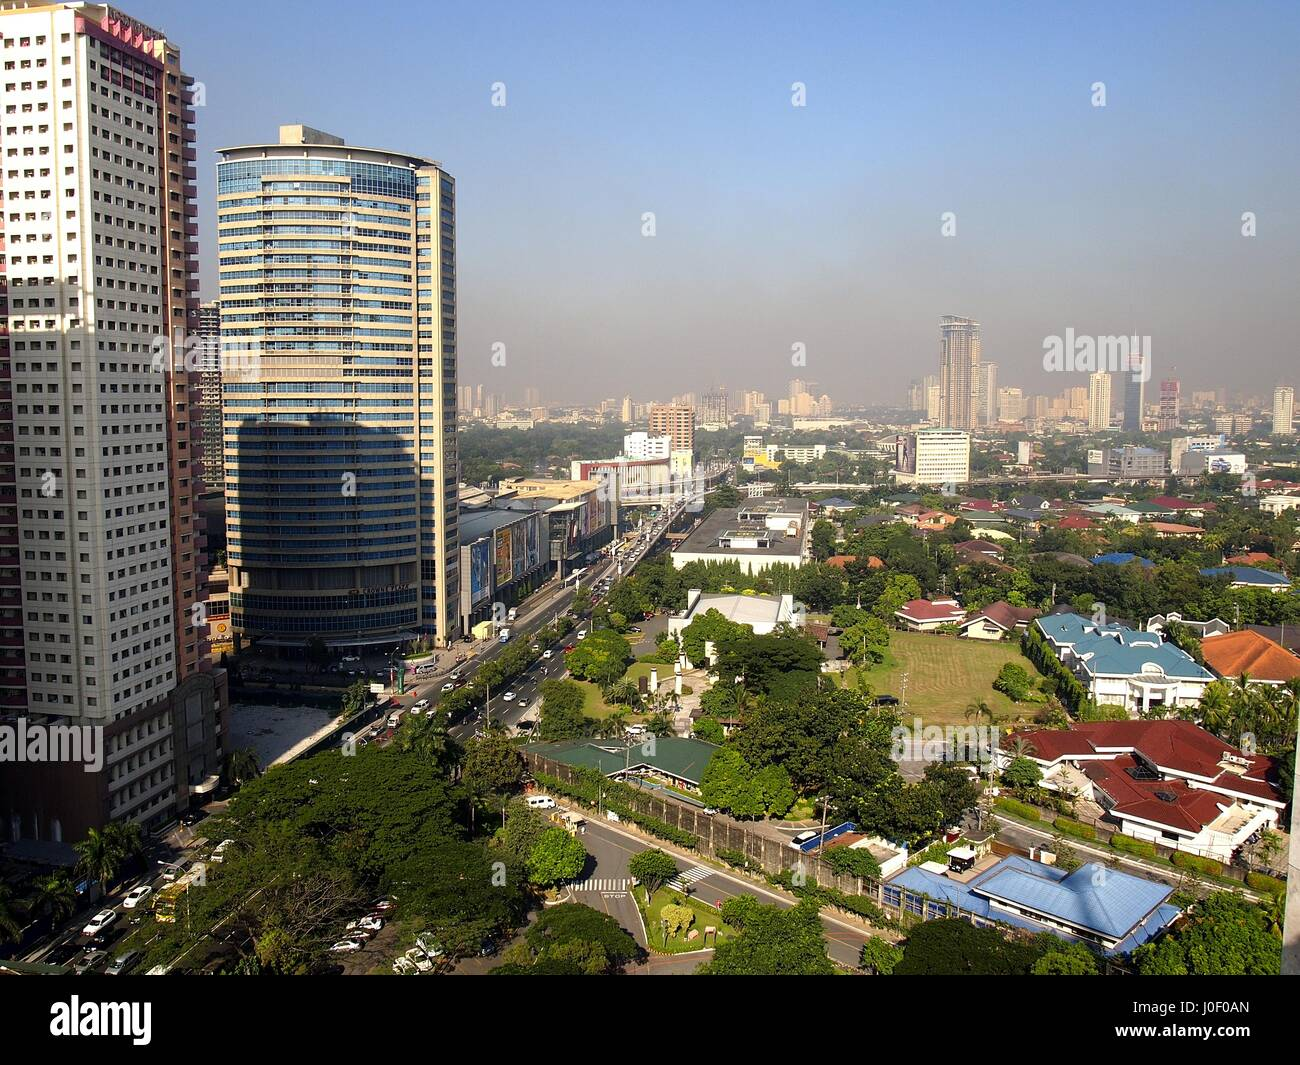 PASIG CITY, PHILIPPINES - JANUARY 14, 2016: Aerial view of Pasig City with building and skyscrapers - Stock Image